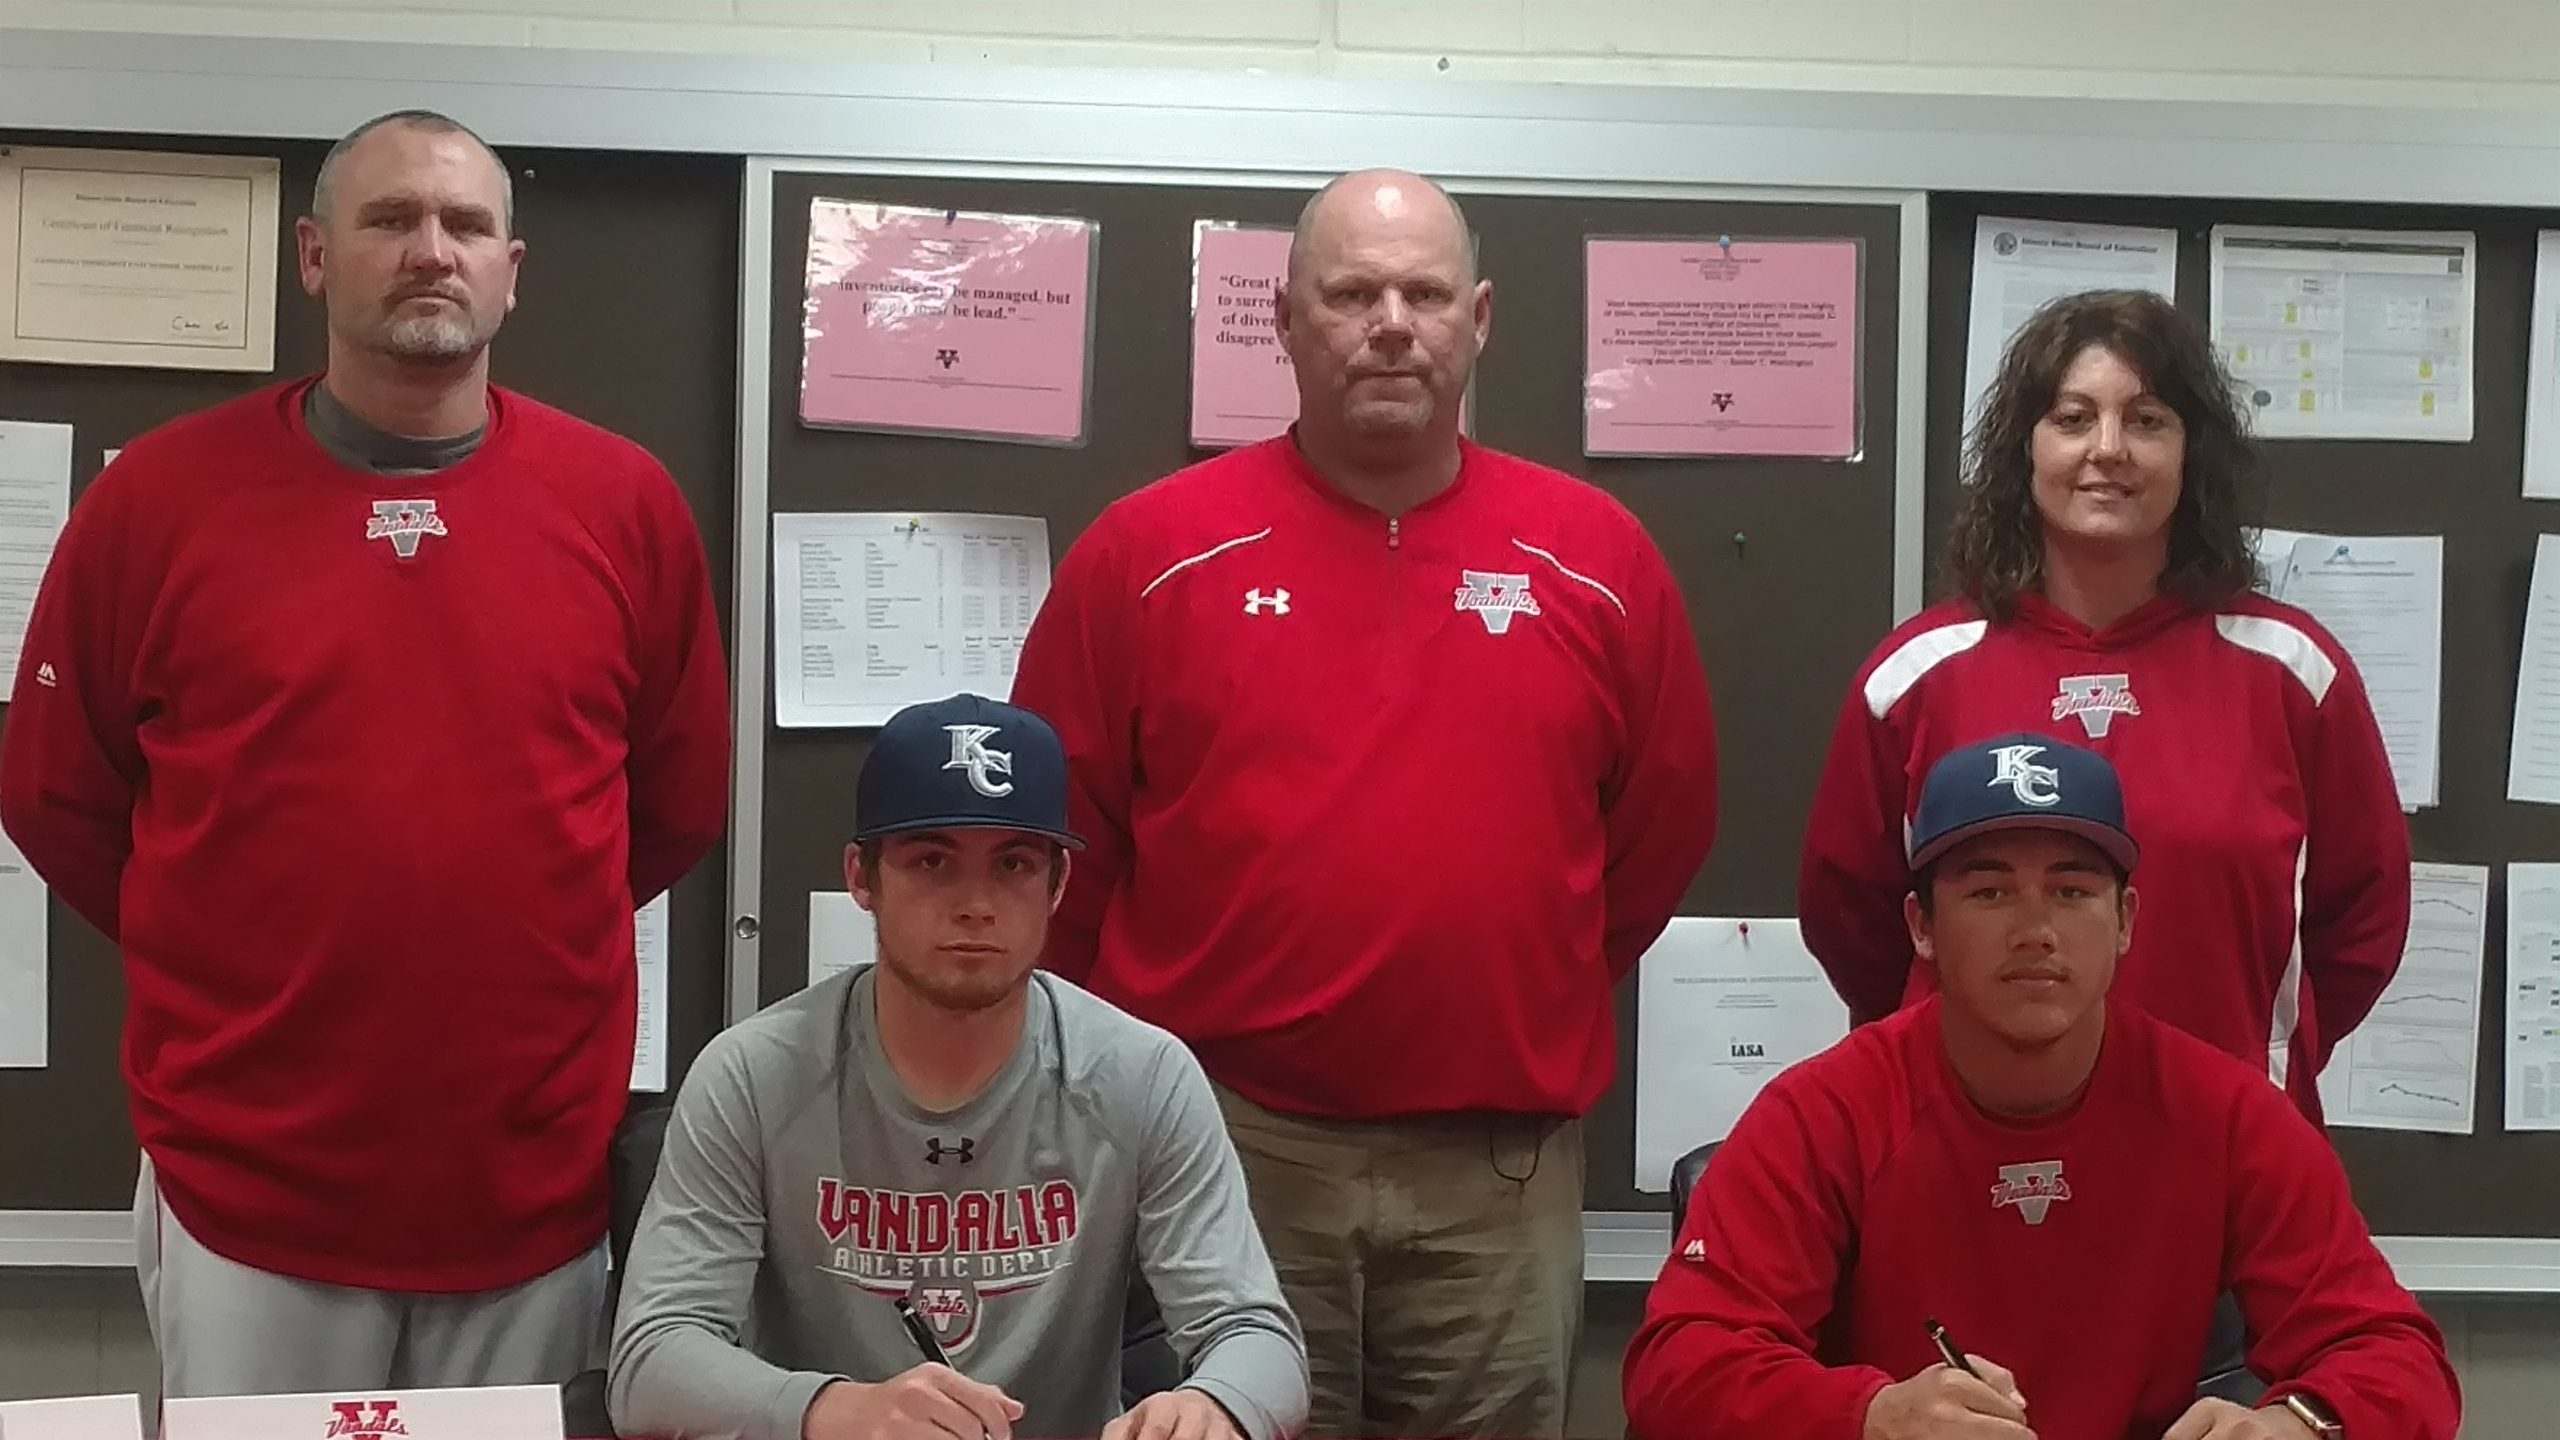 Vandals Richie Well, Kelly Jones will play baseball at Kaskaskia College